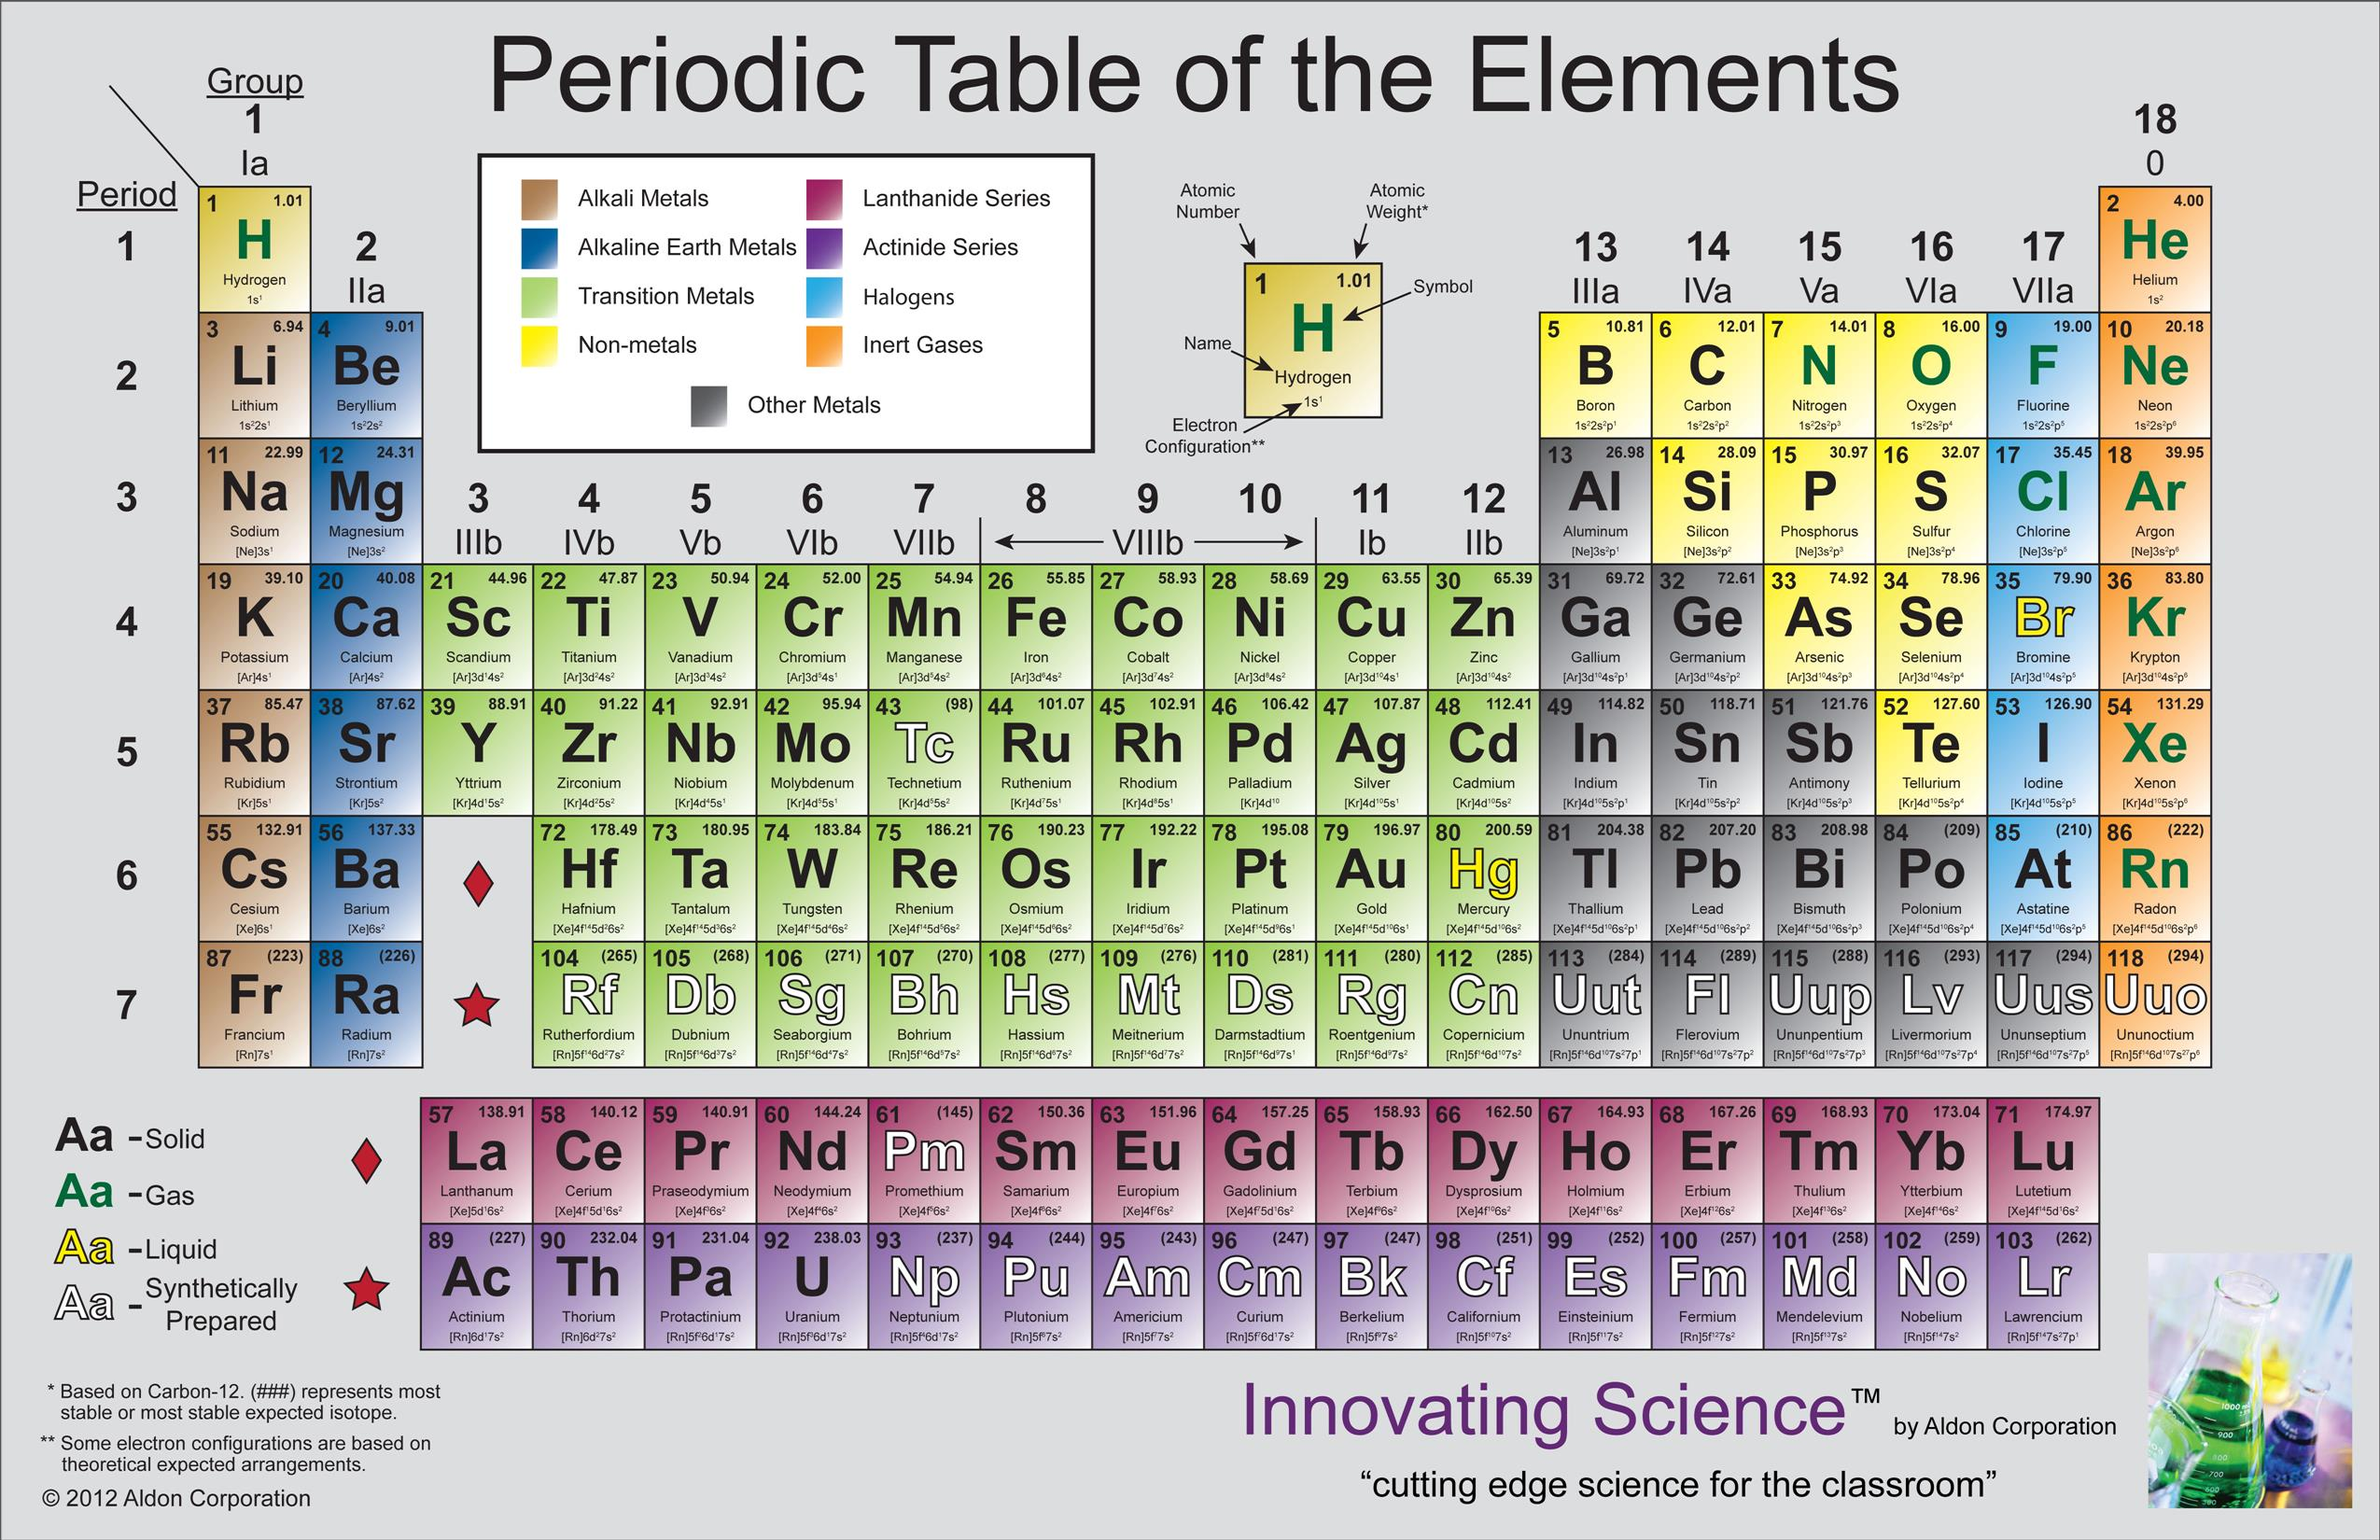 Periodic tables of the elements in american englishmichael canov amer2g urtaz Gallery